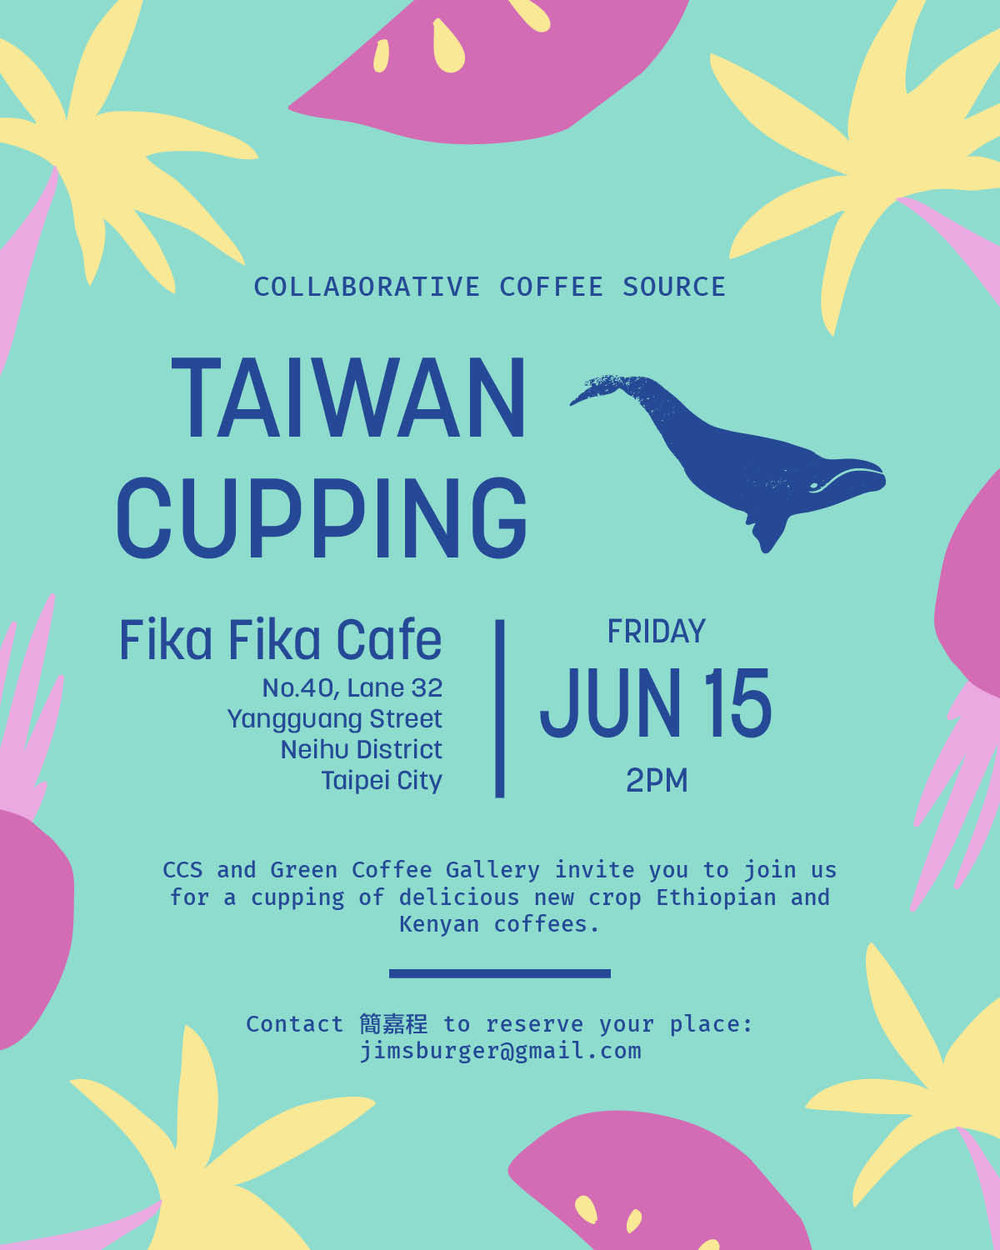 Taiwan Cupping June 15.jpg